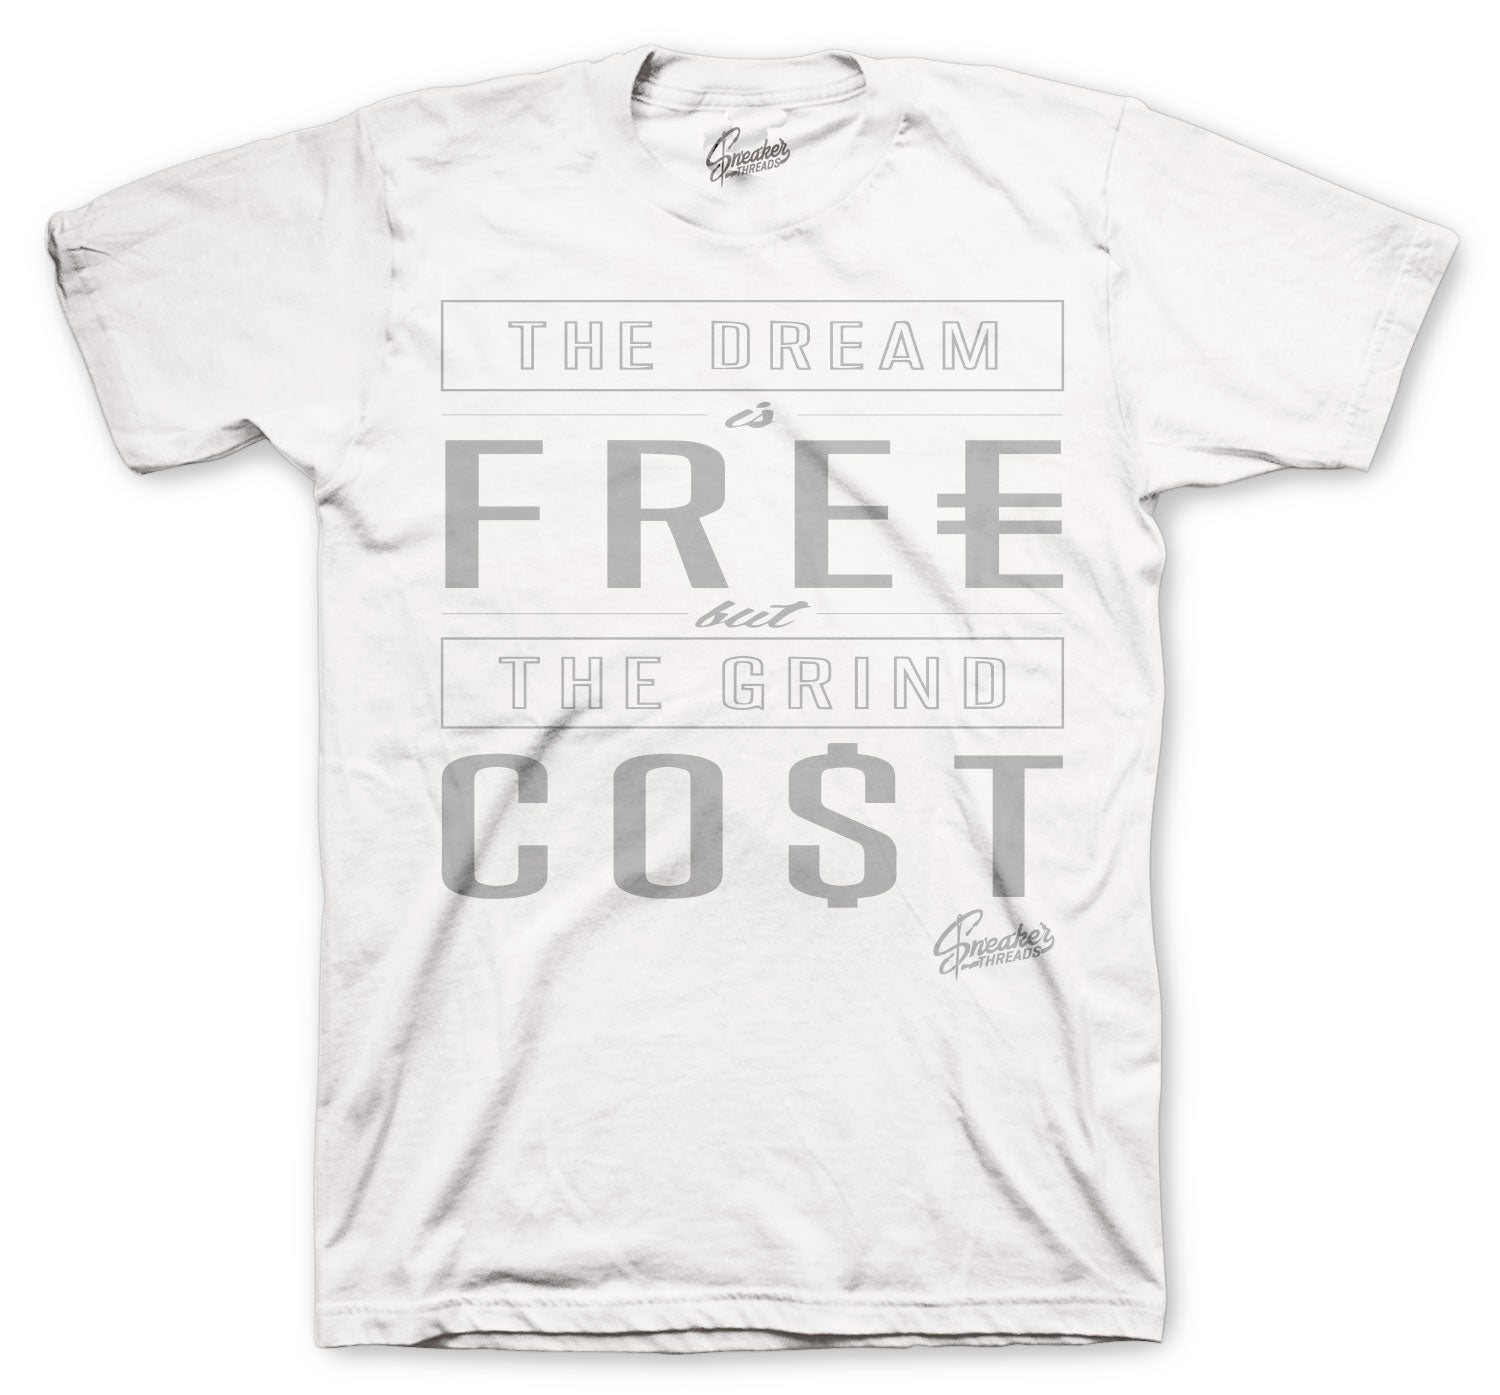 Jordan 1 Neutral Grey Shirt - Cost - White